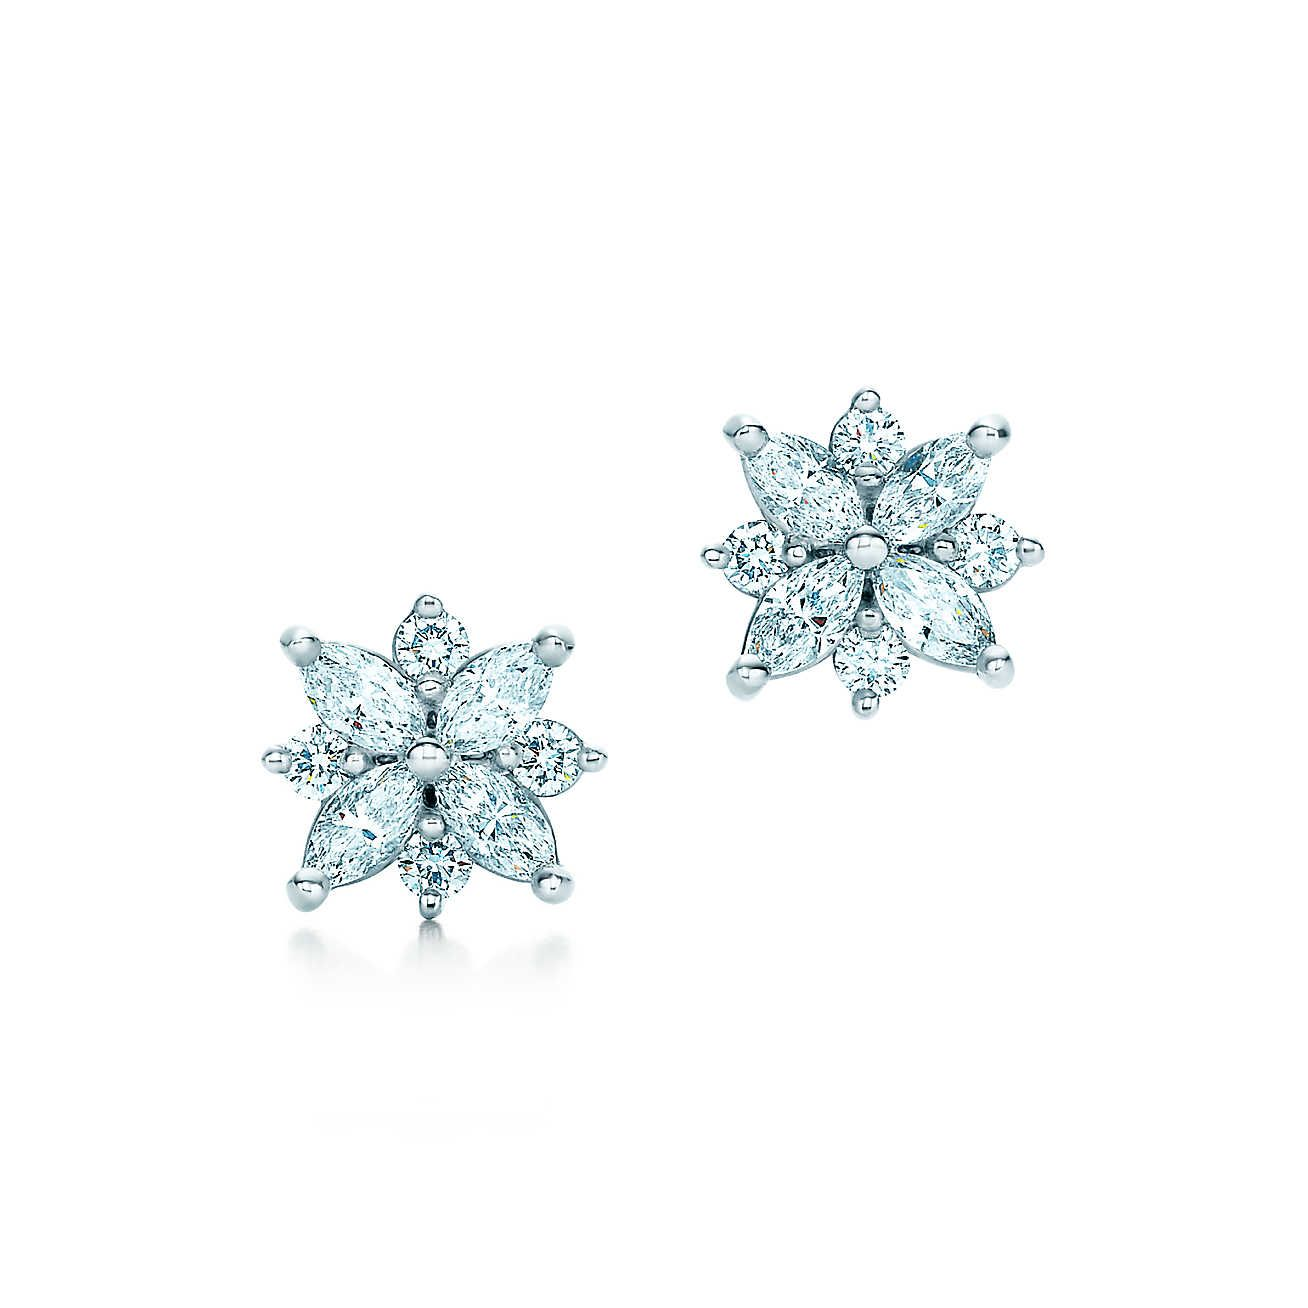 Tiffany Victoria Cer Earrings